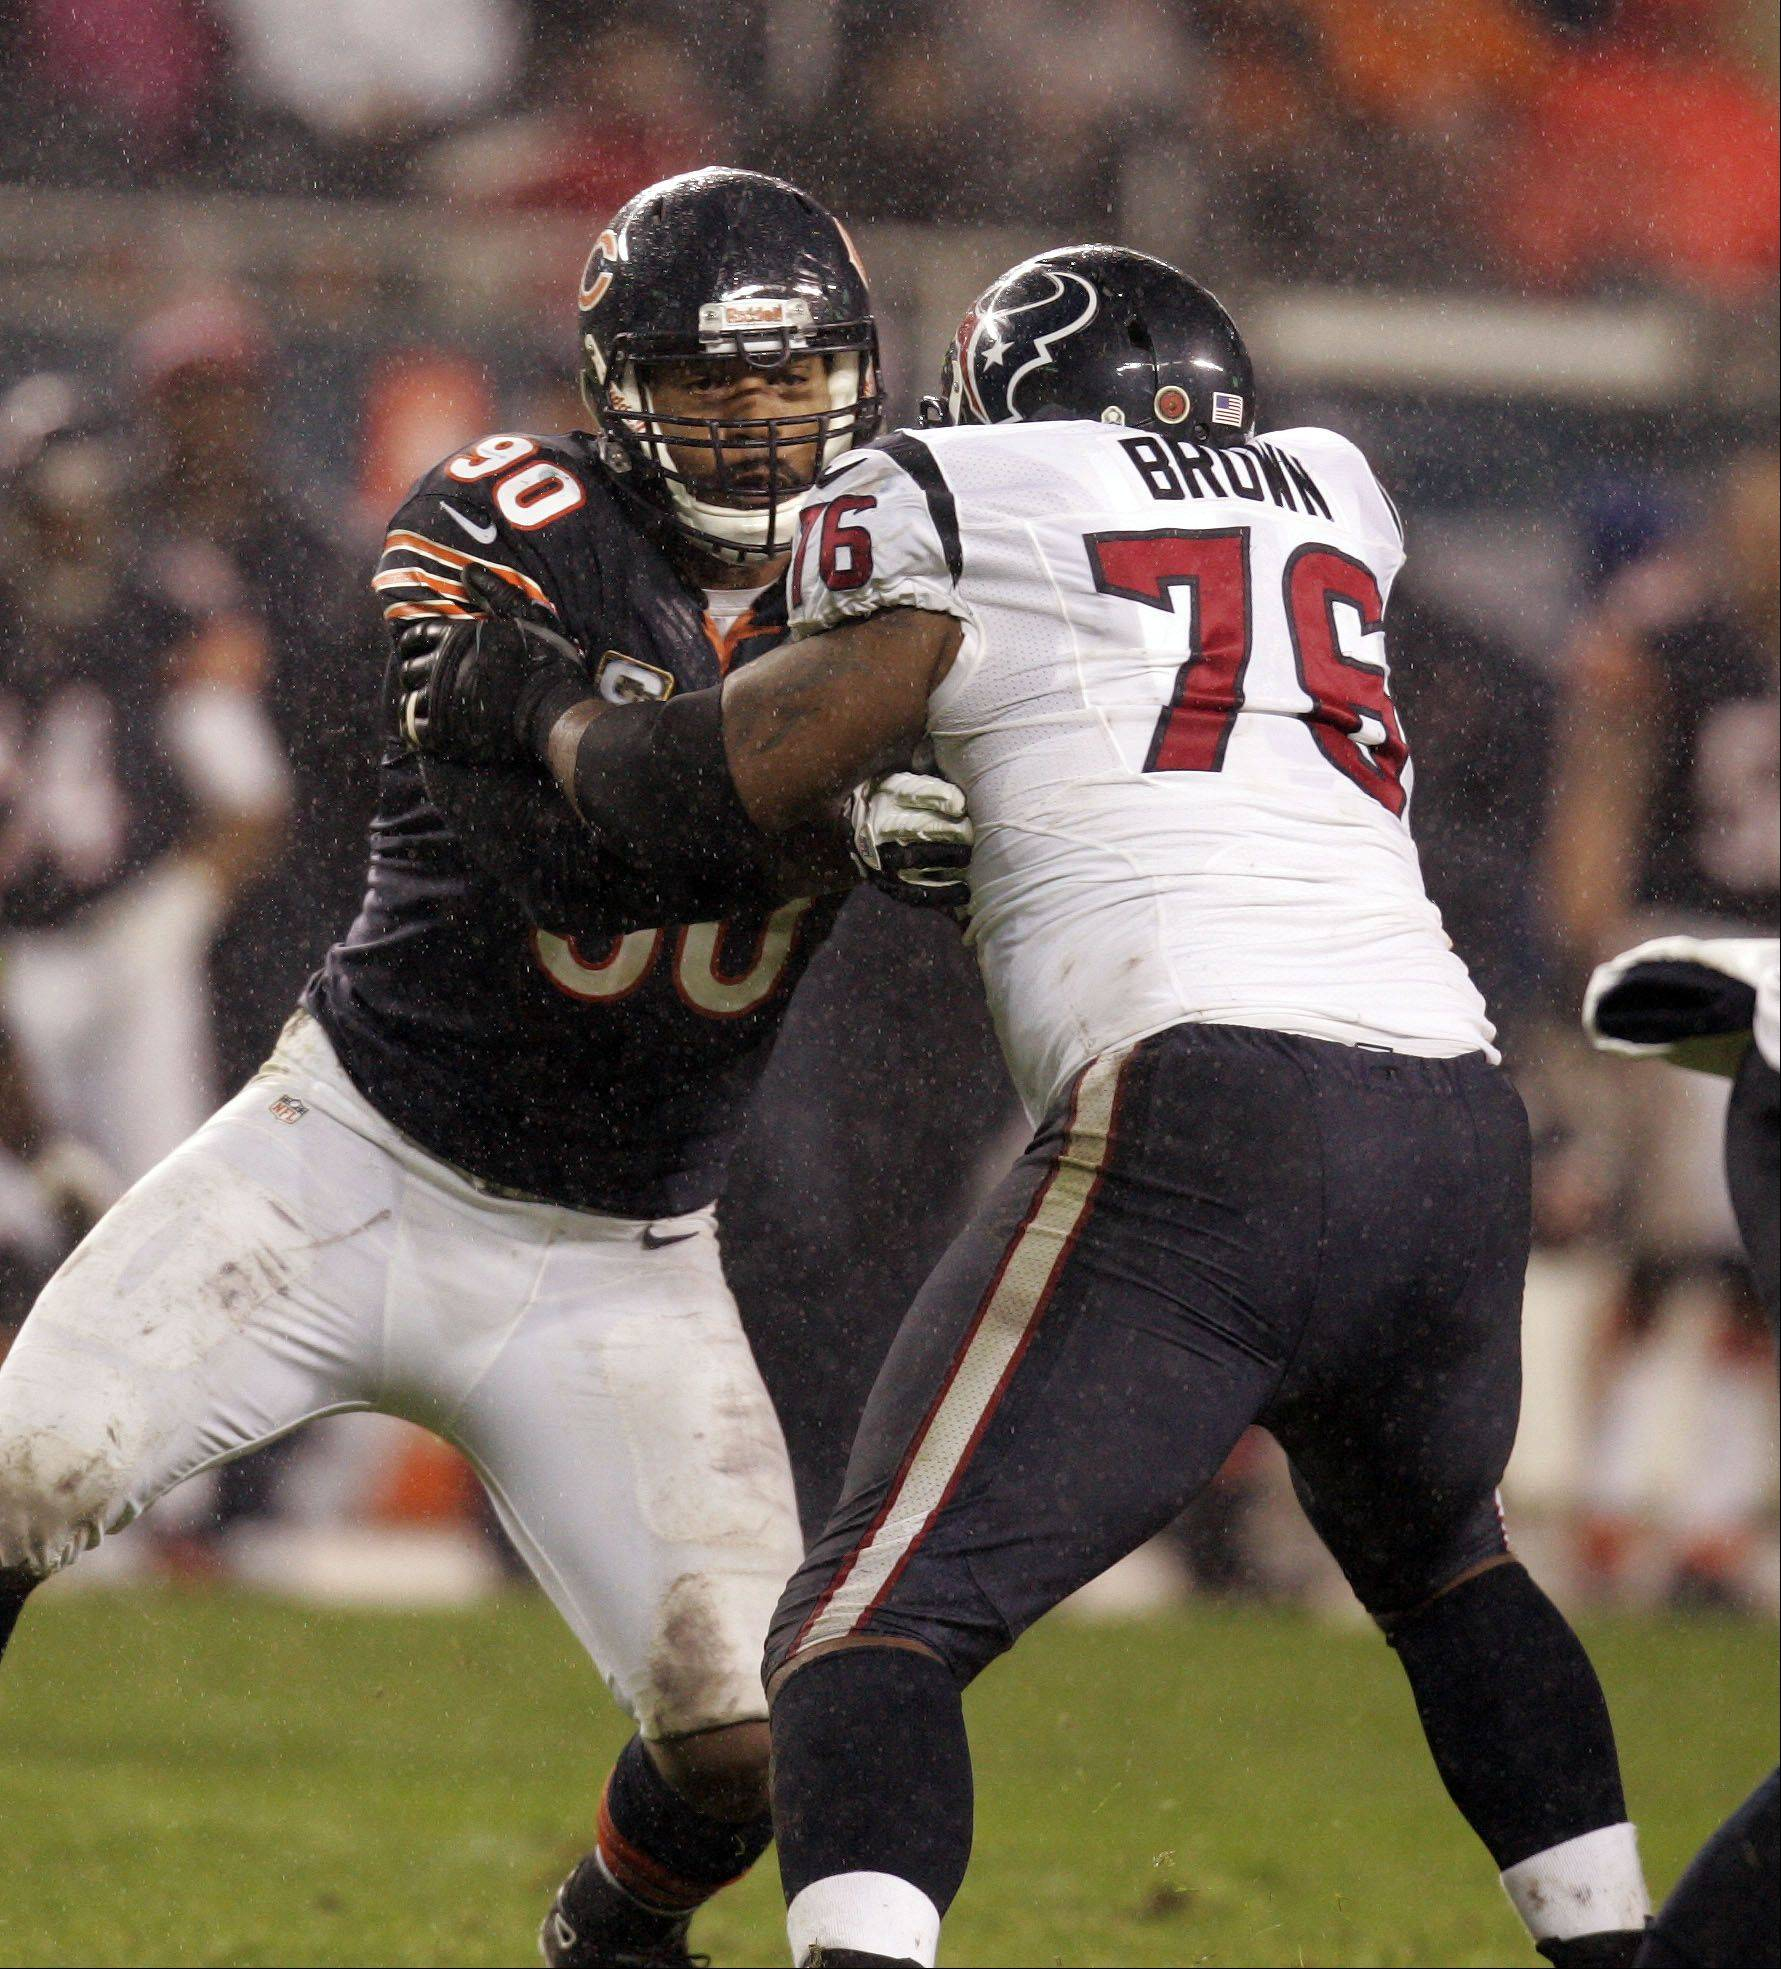 Chicago Bears defensive end Julius Peppers (90) battles with Houston Texans tackle Duane Brown (76) during the game Sunday November 11, 2012 at Soldier Field in Chicago.